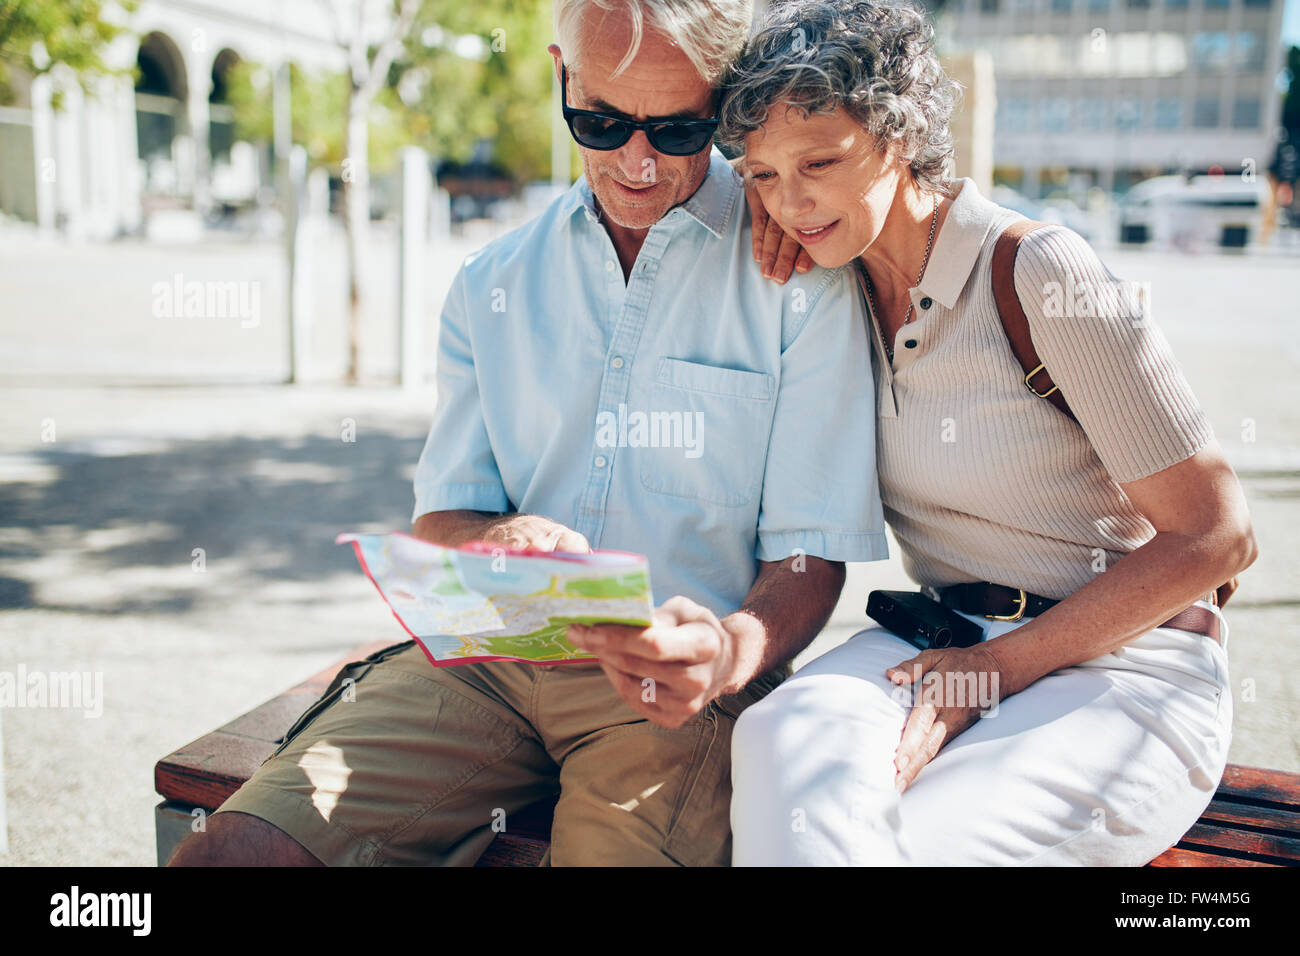 Senior couple looking for destination on a city map. Two active seniors reading a map together while sitting outdoors Stock Photo